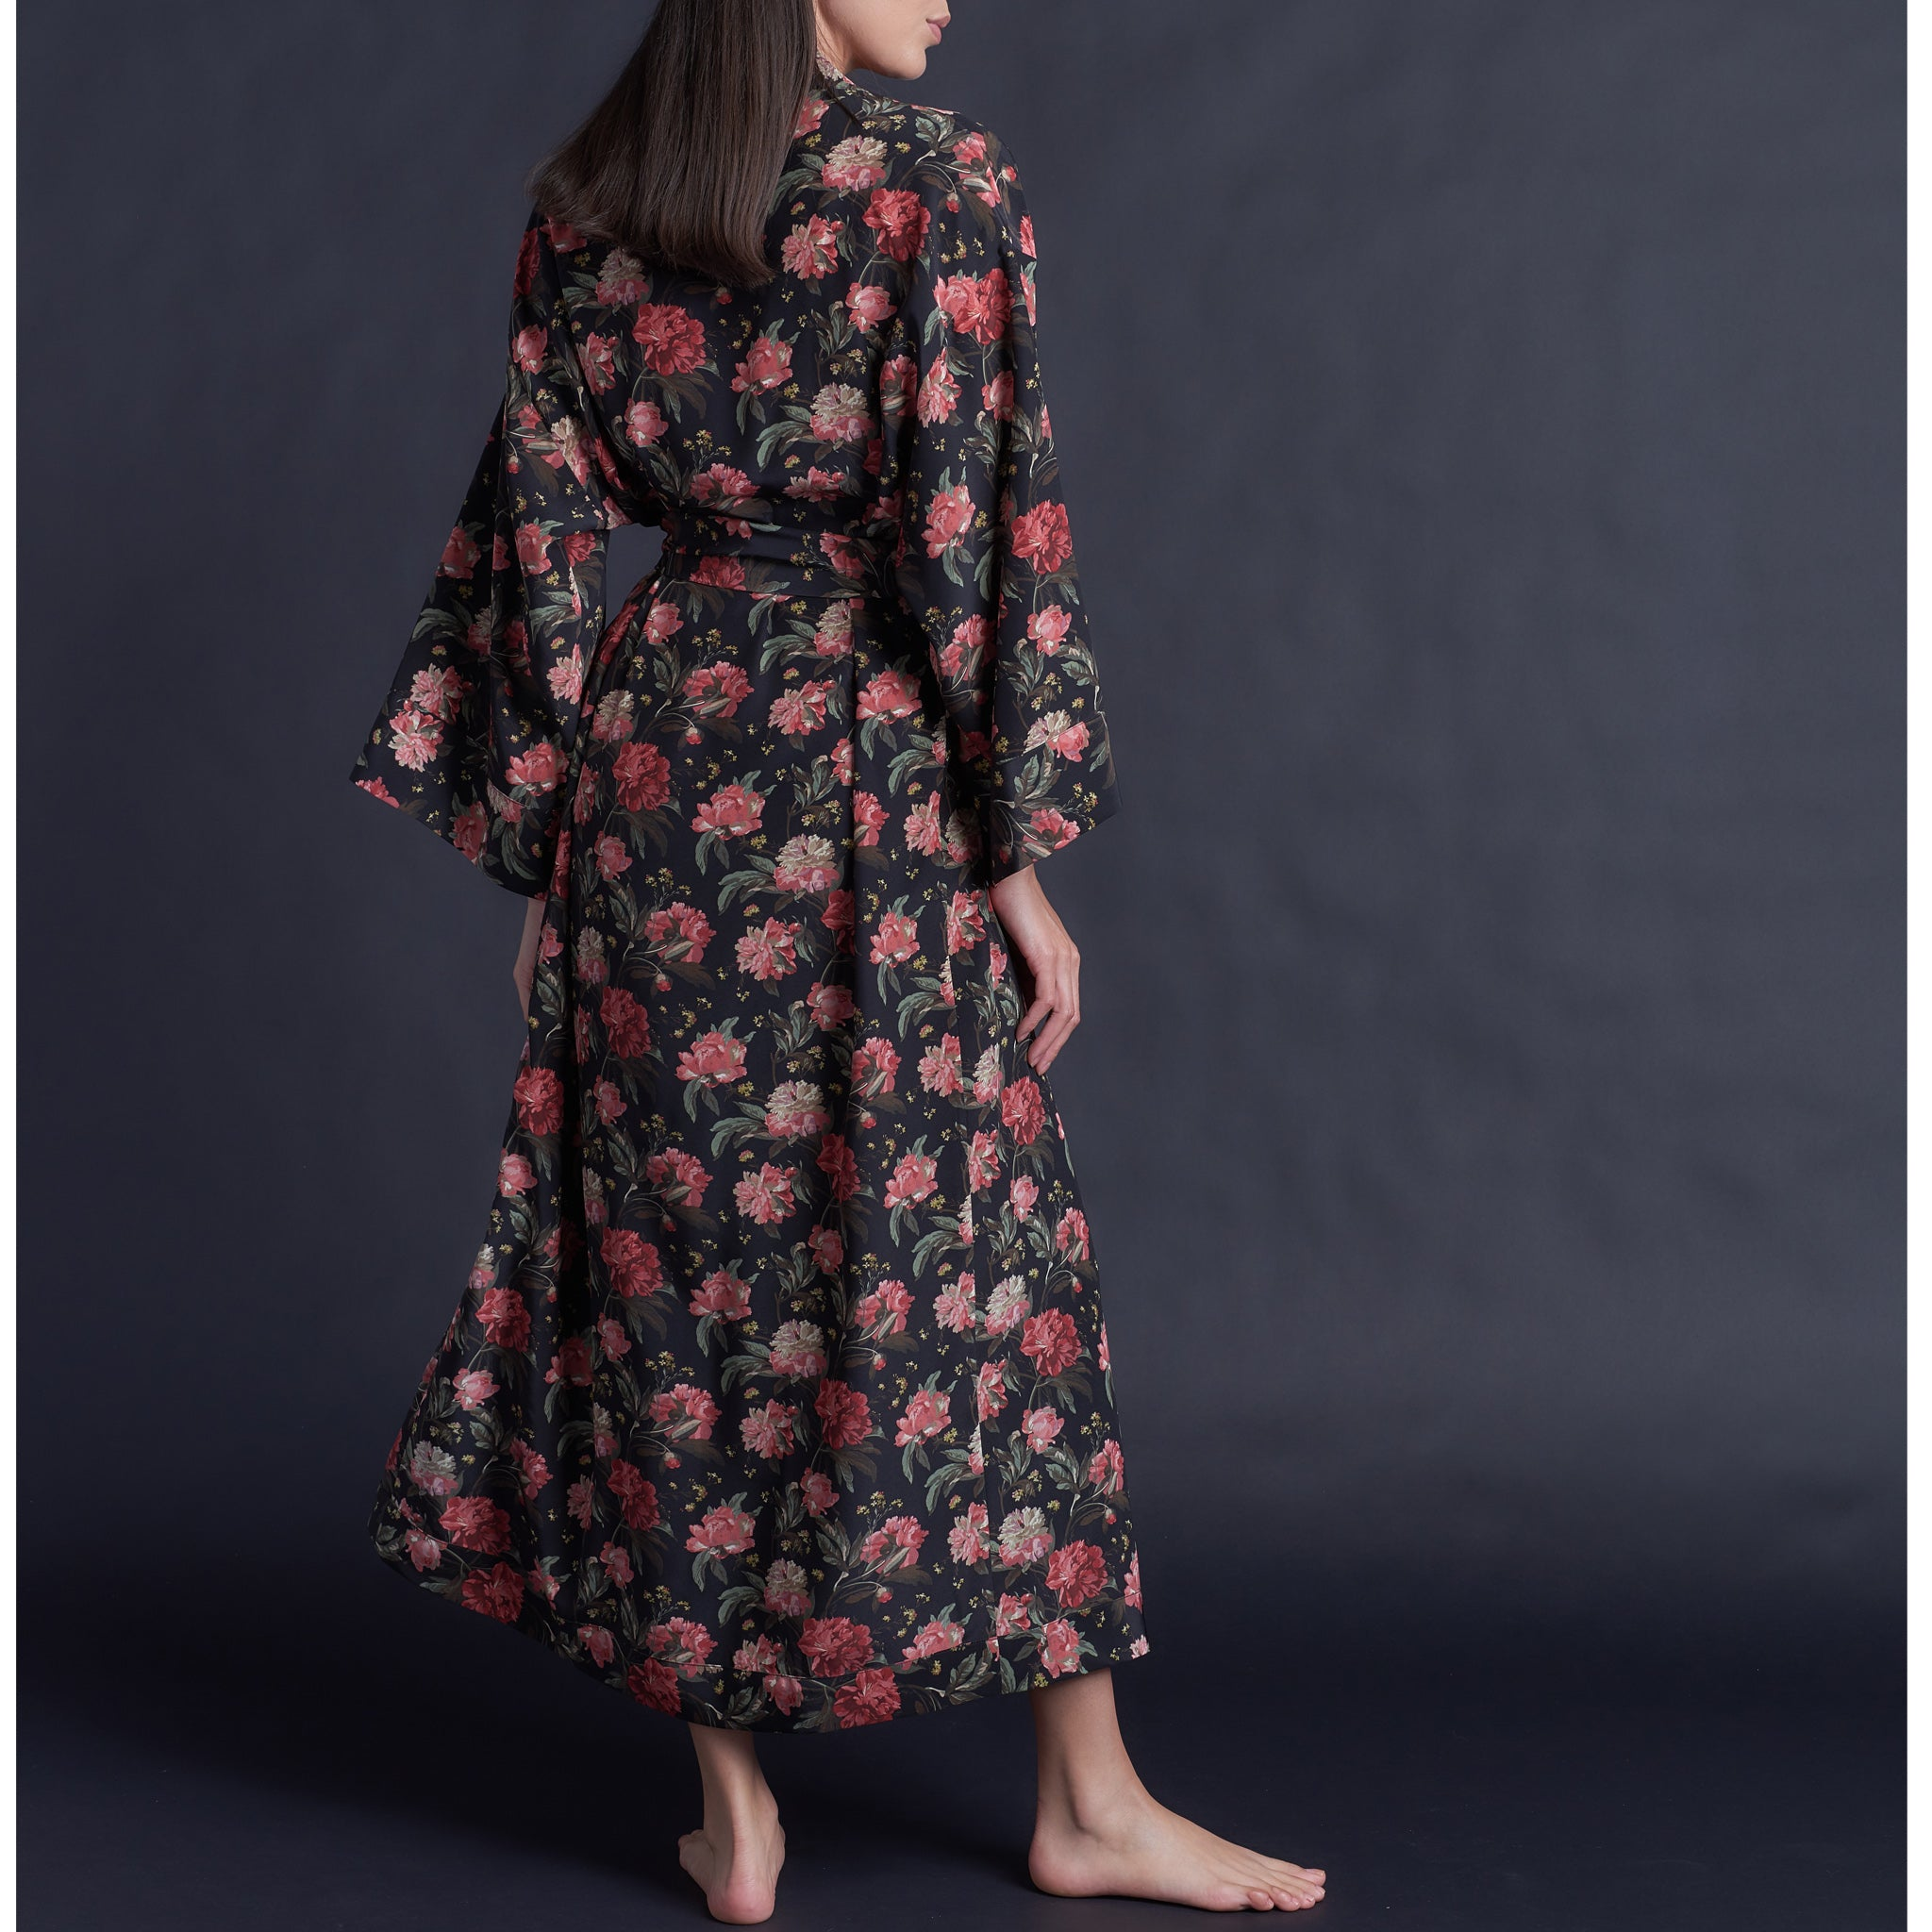 Asteria Kimono Robe in Liberty of London Decadent Blooms Silk Crepe De Chine